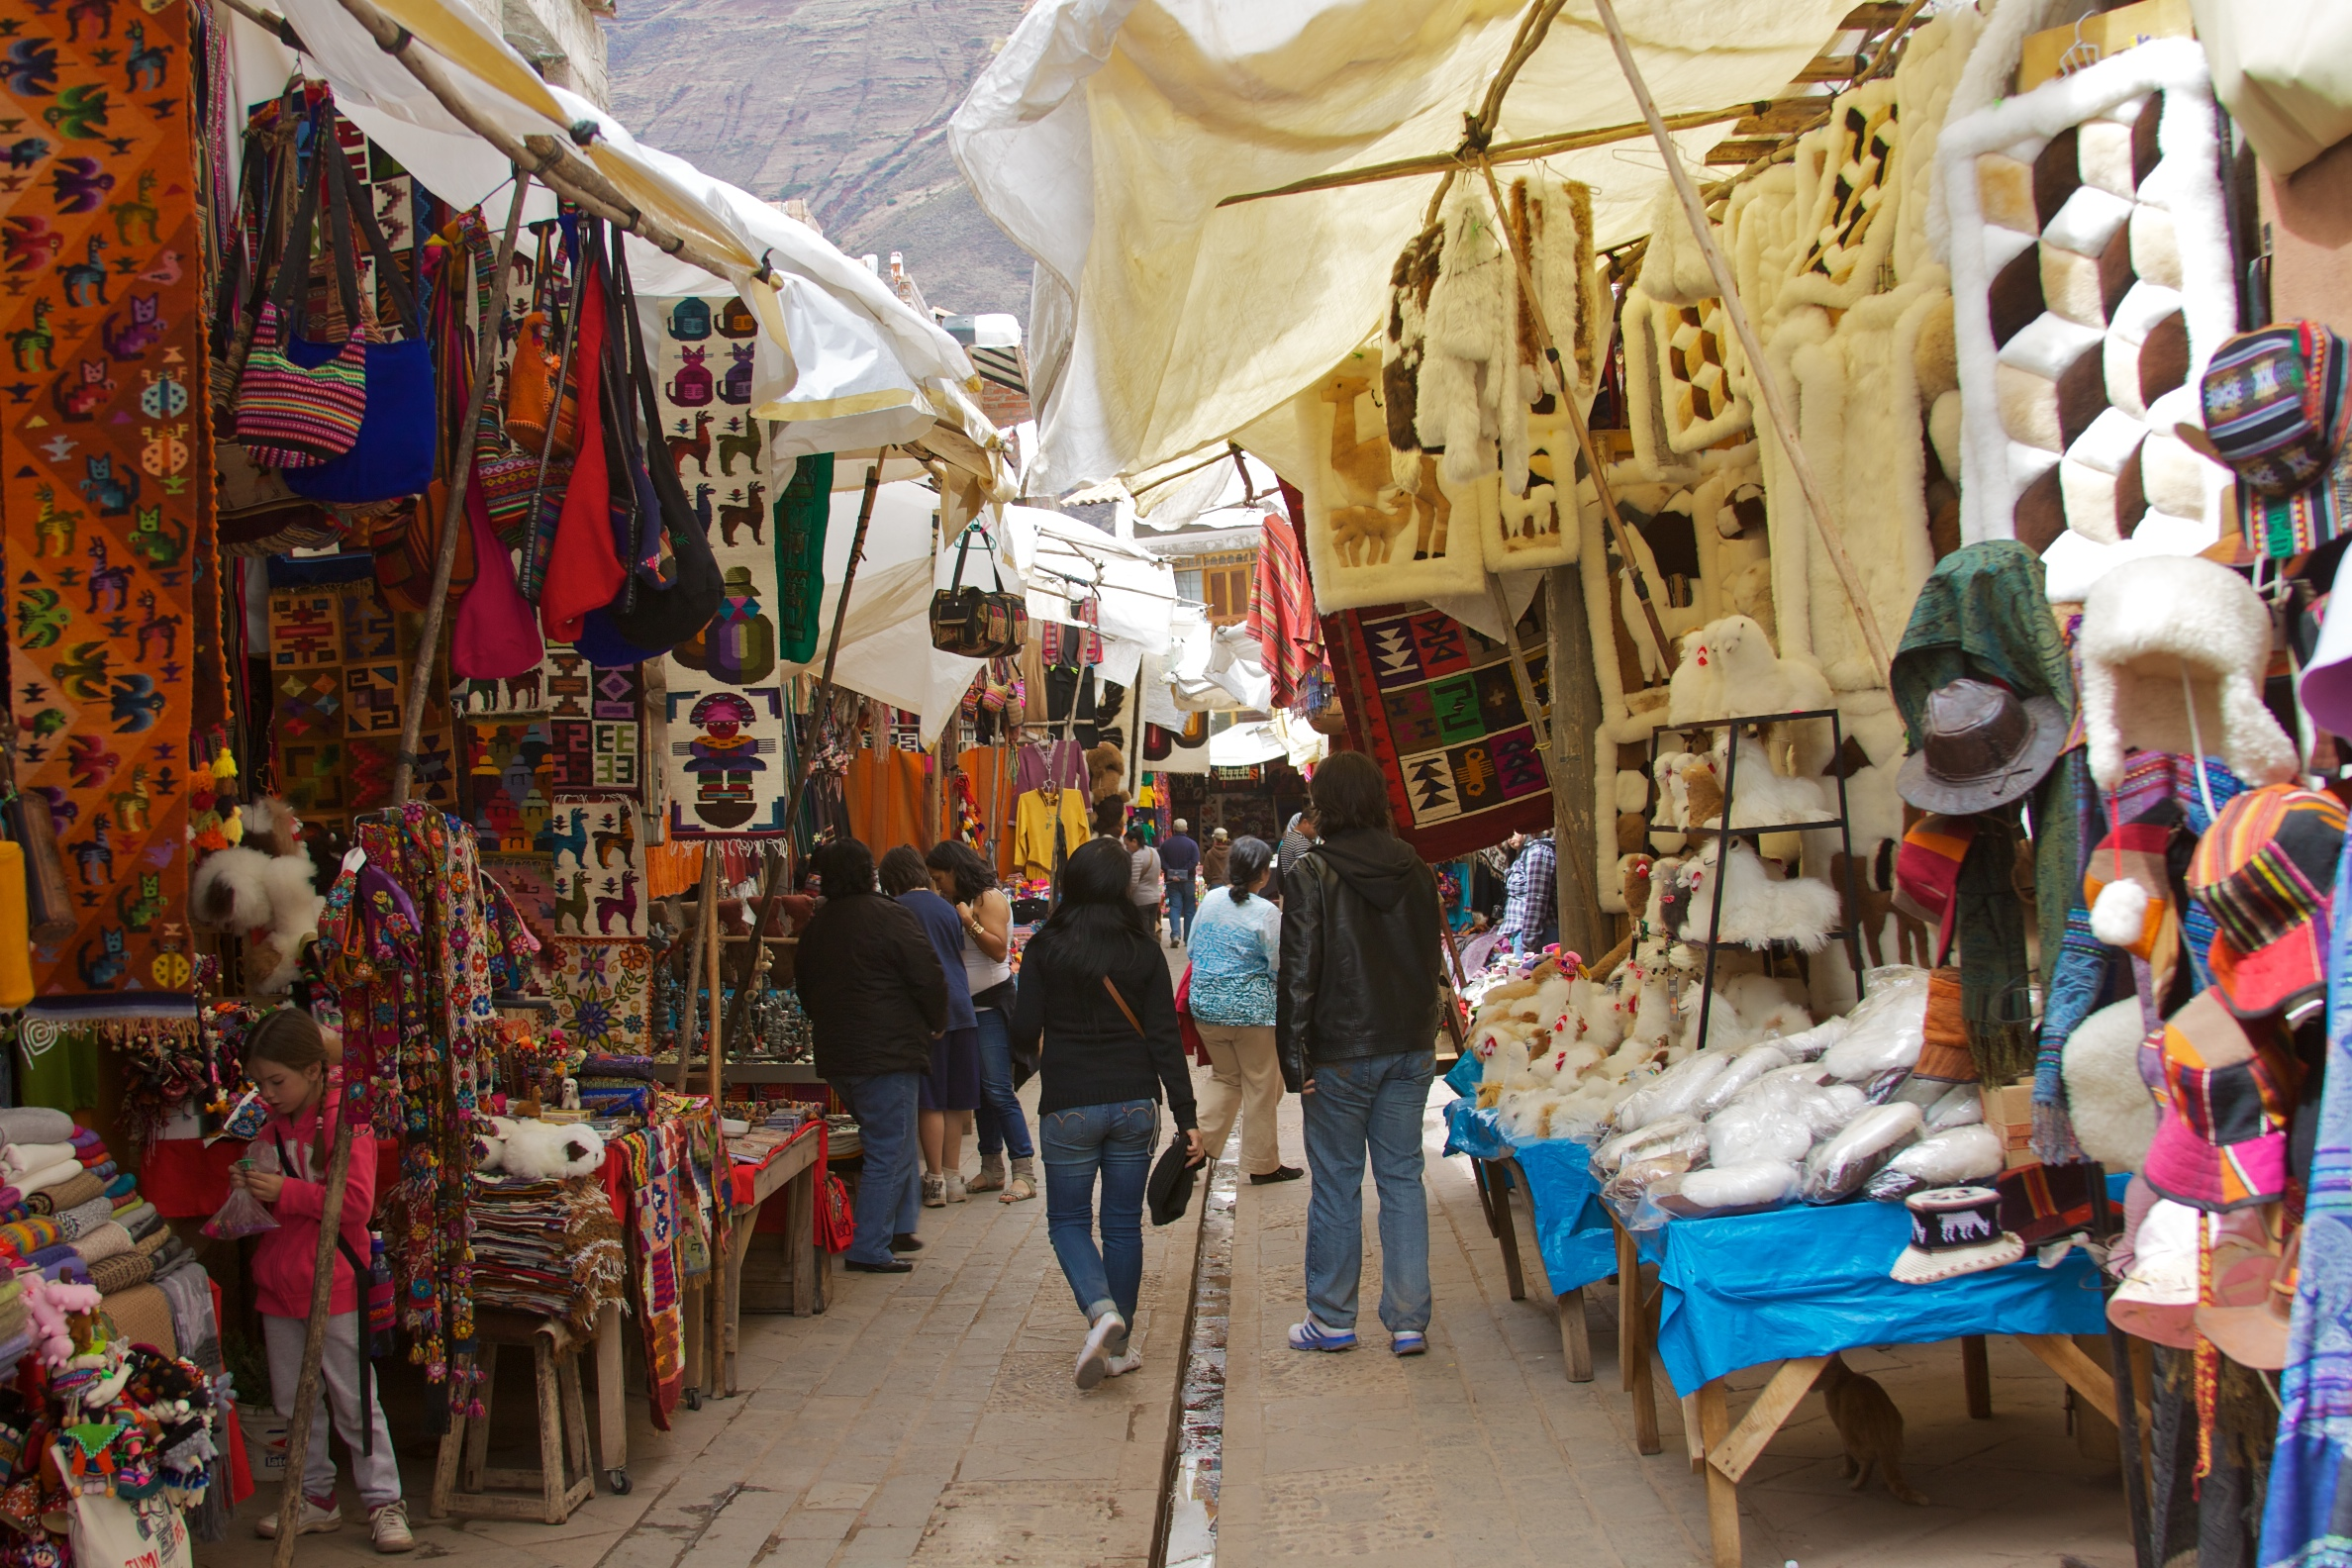 See, touch and feel at Pisac market - The sleepy town of Pisac comes alive every Sunday when people from the surrounding communities come together to sell and buy produce, crafts and more.